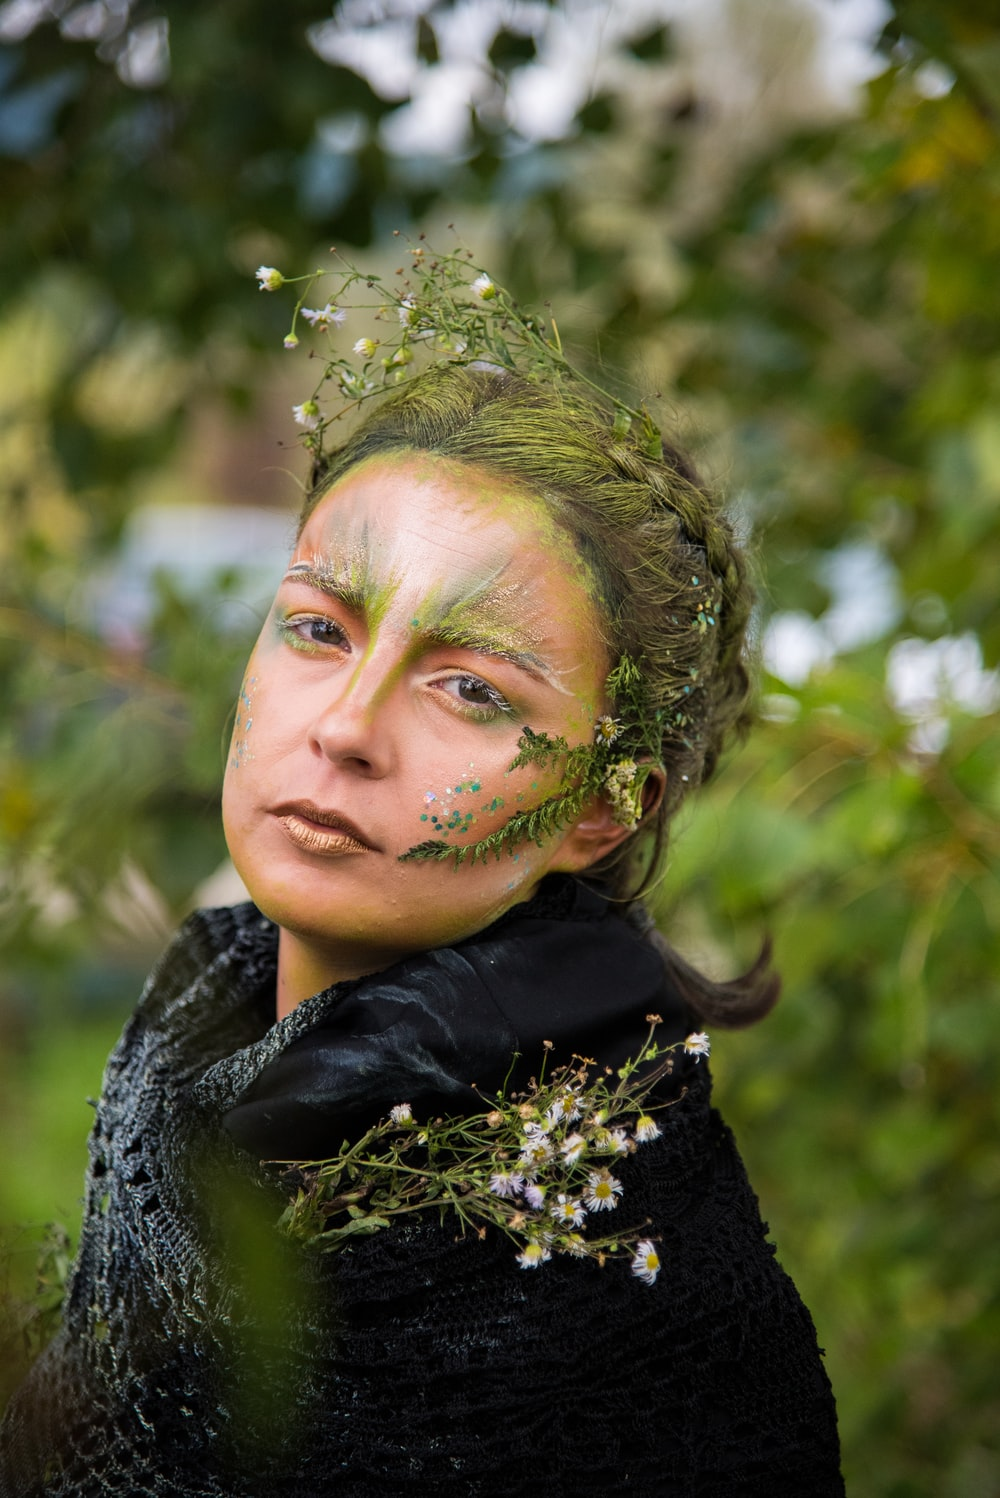 selective focus photo of woman with nature-themed makeup